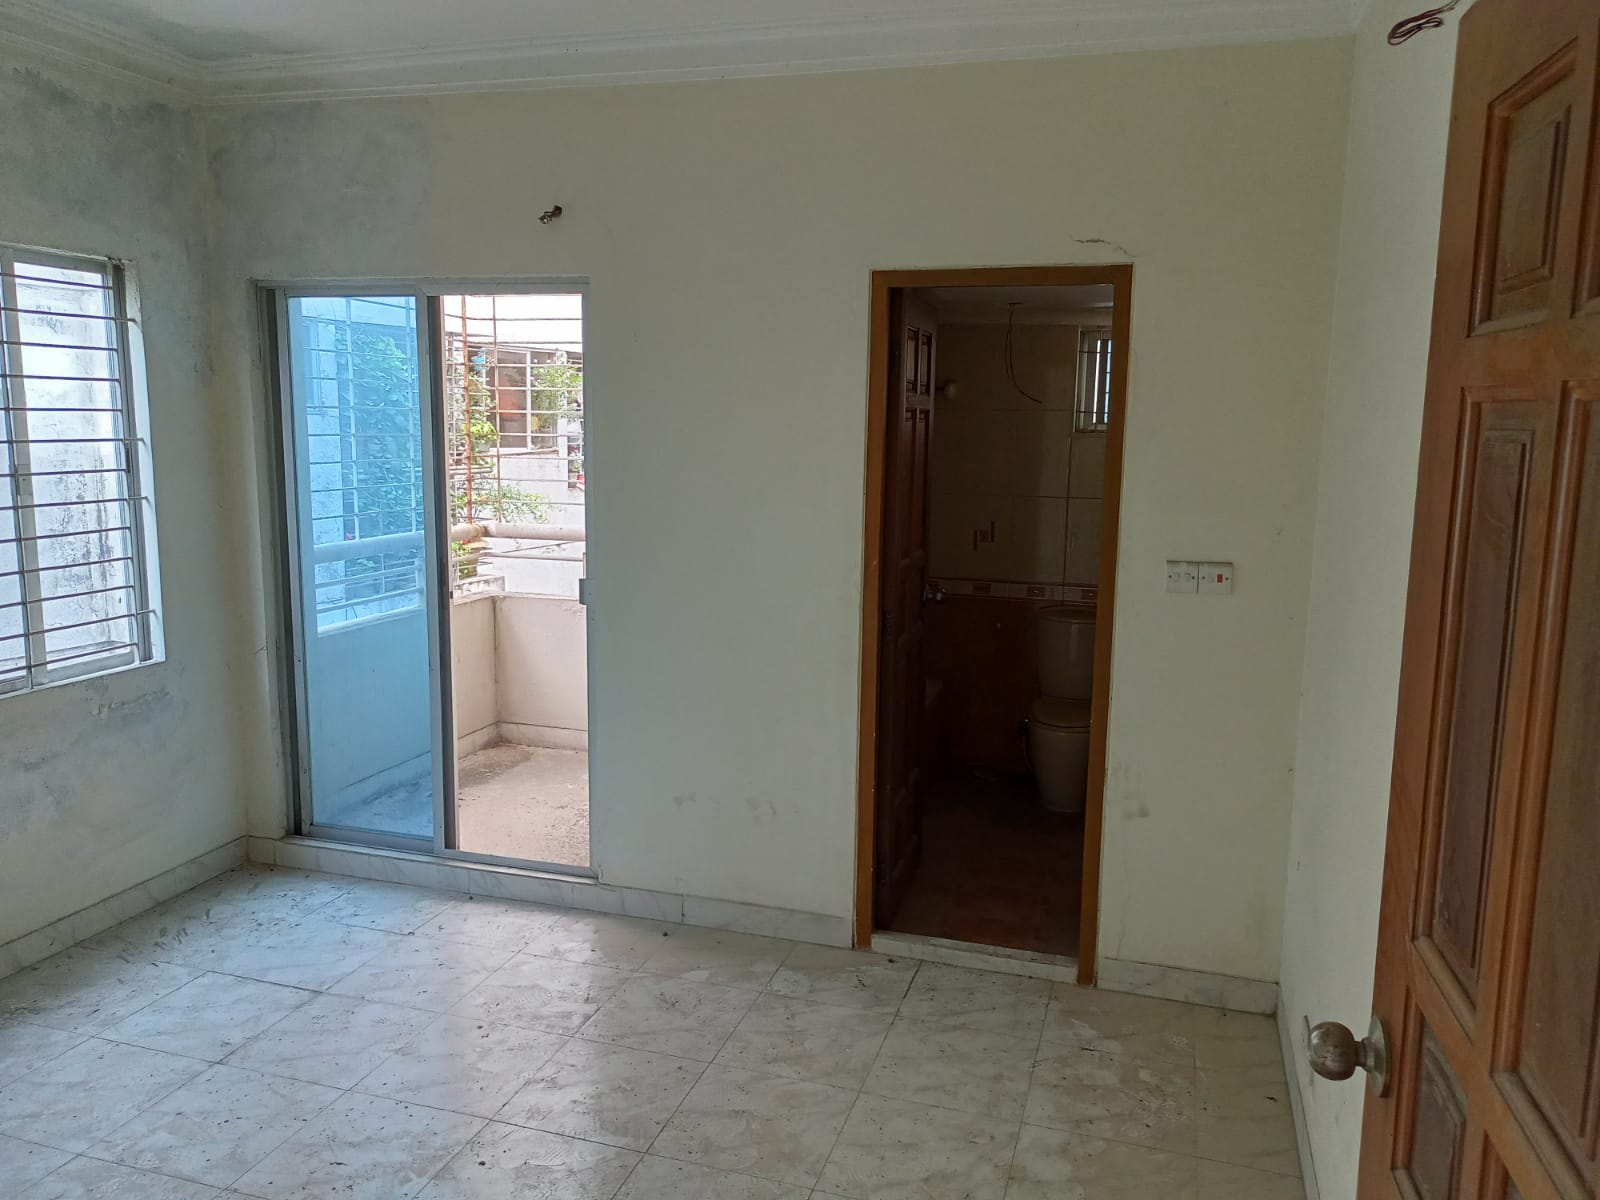 1669-sft-apartment-for-sale-in-green-road-8th-floor-475544